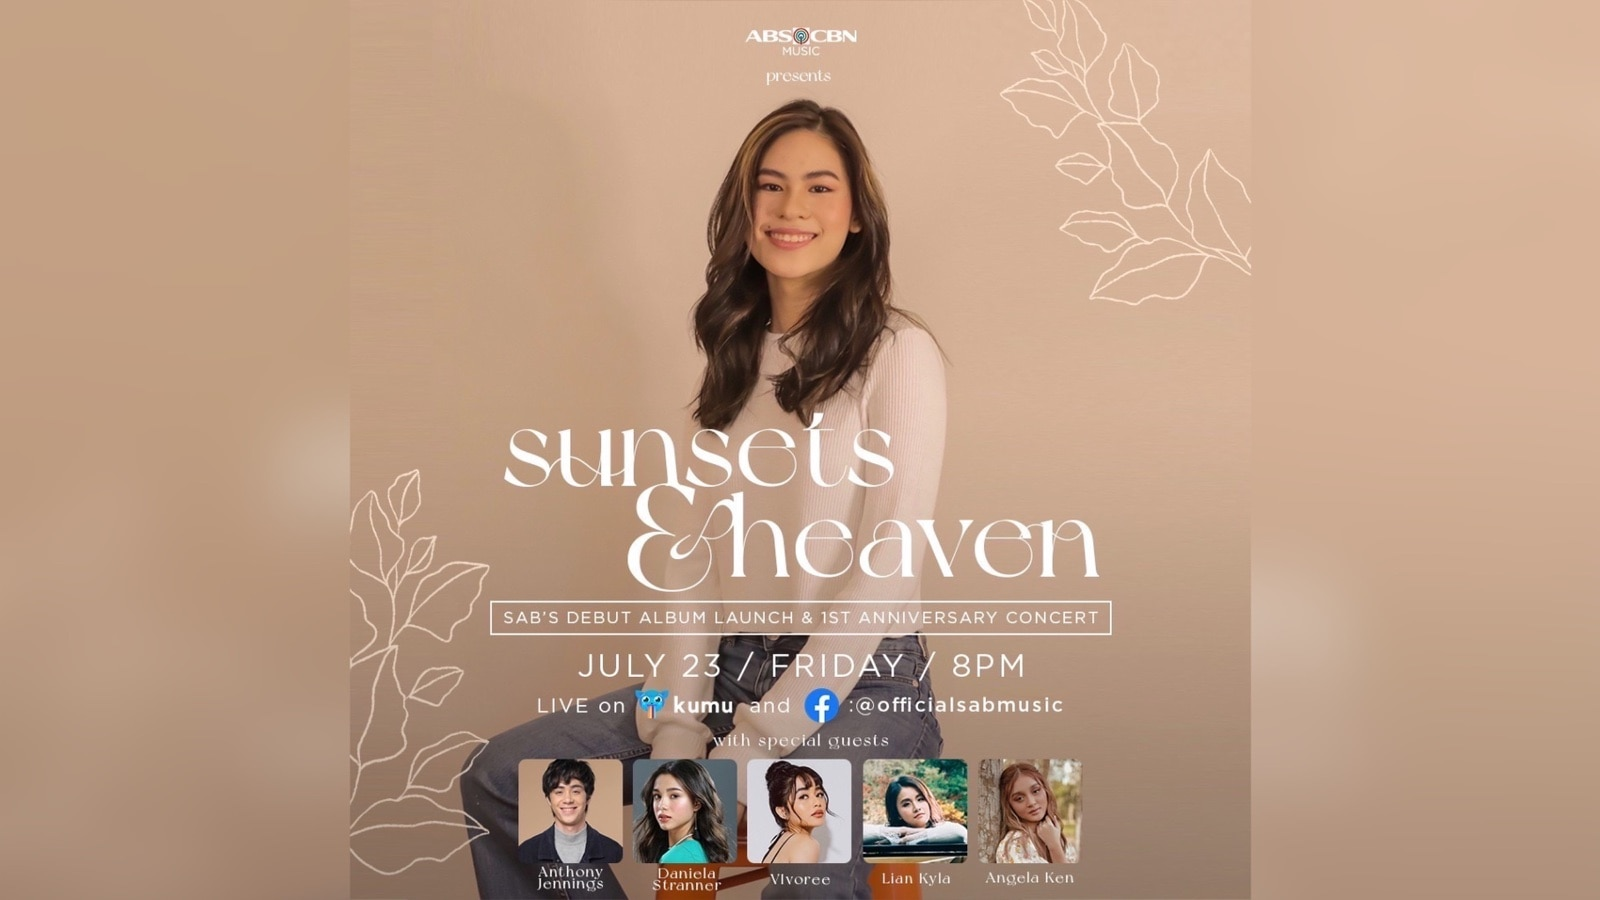 """Sab marks first music anniversary and """"Sunsets & Heaven"""" album launch with a free concert"""